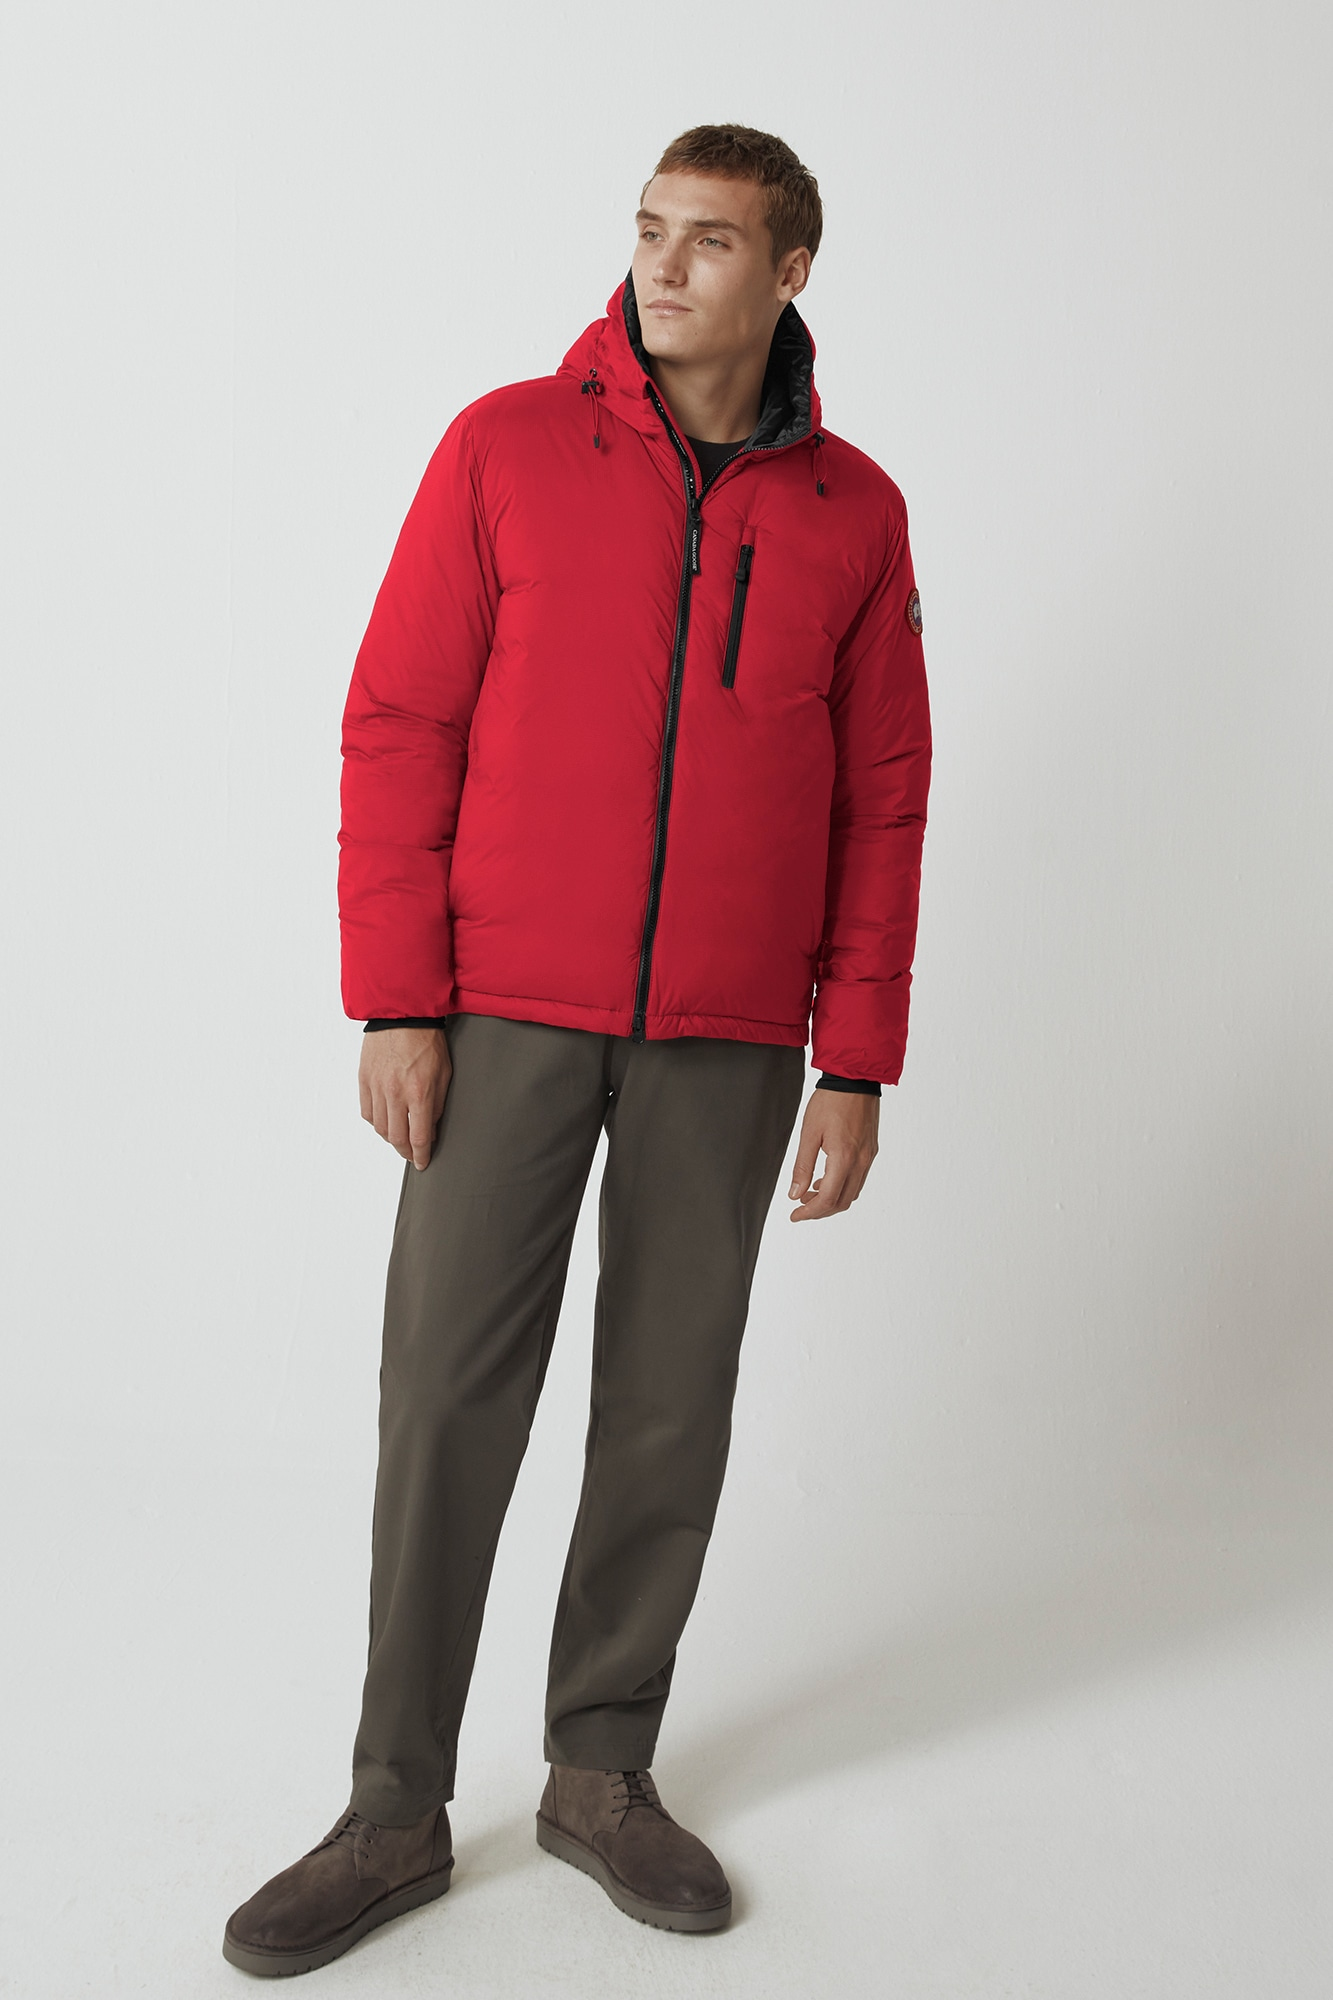 Canada Goose Men's Hoodies Clothing | Stylicy USA